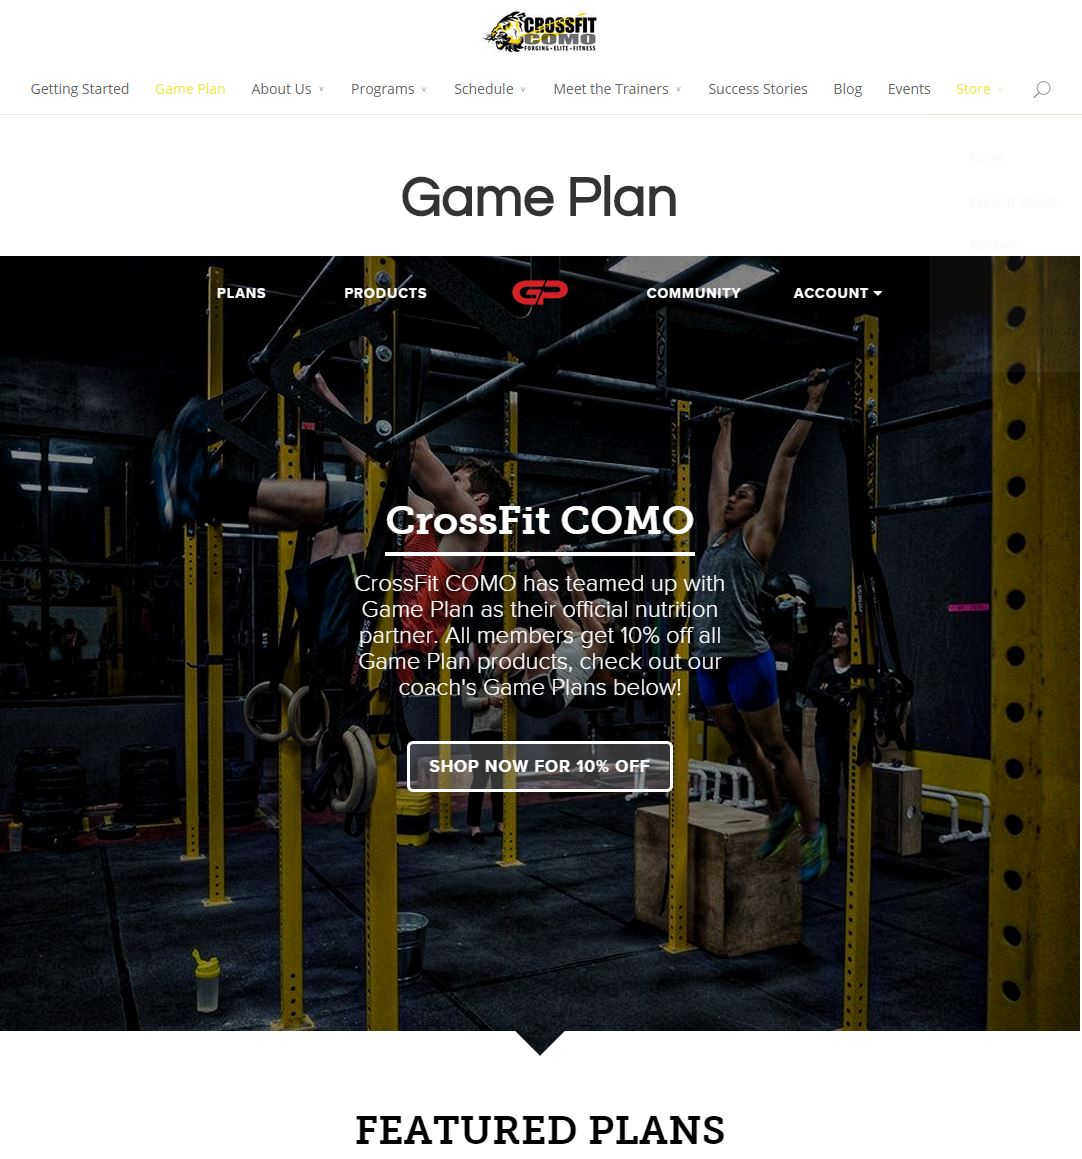 Business plan for opening a crossfit gym